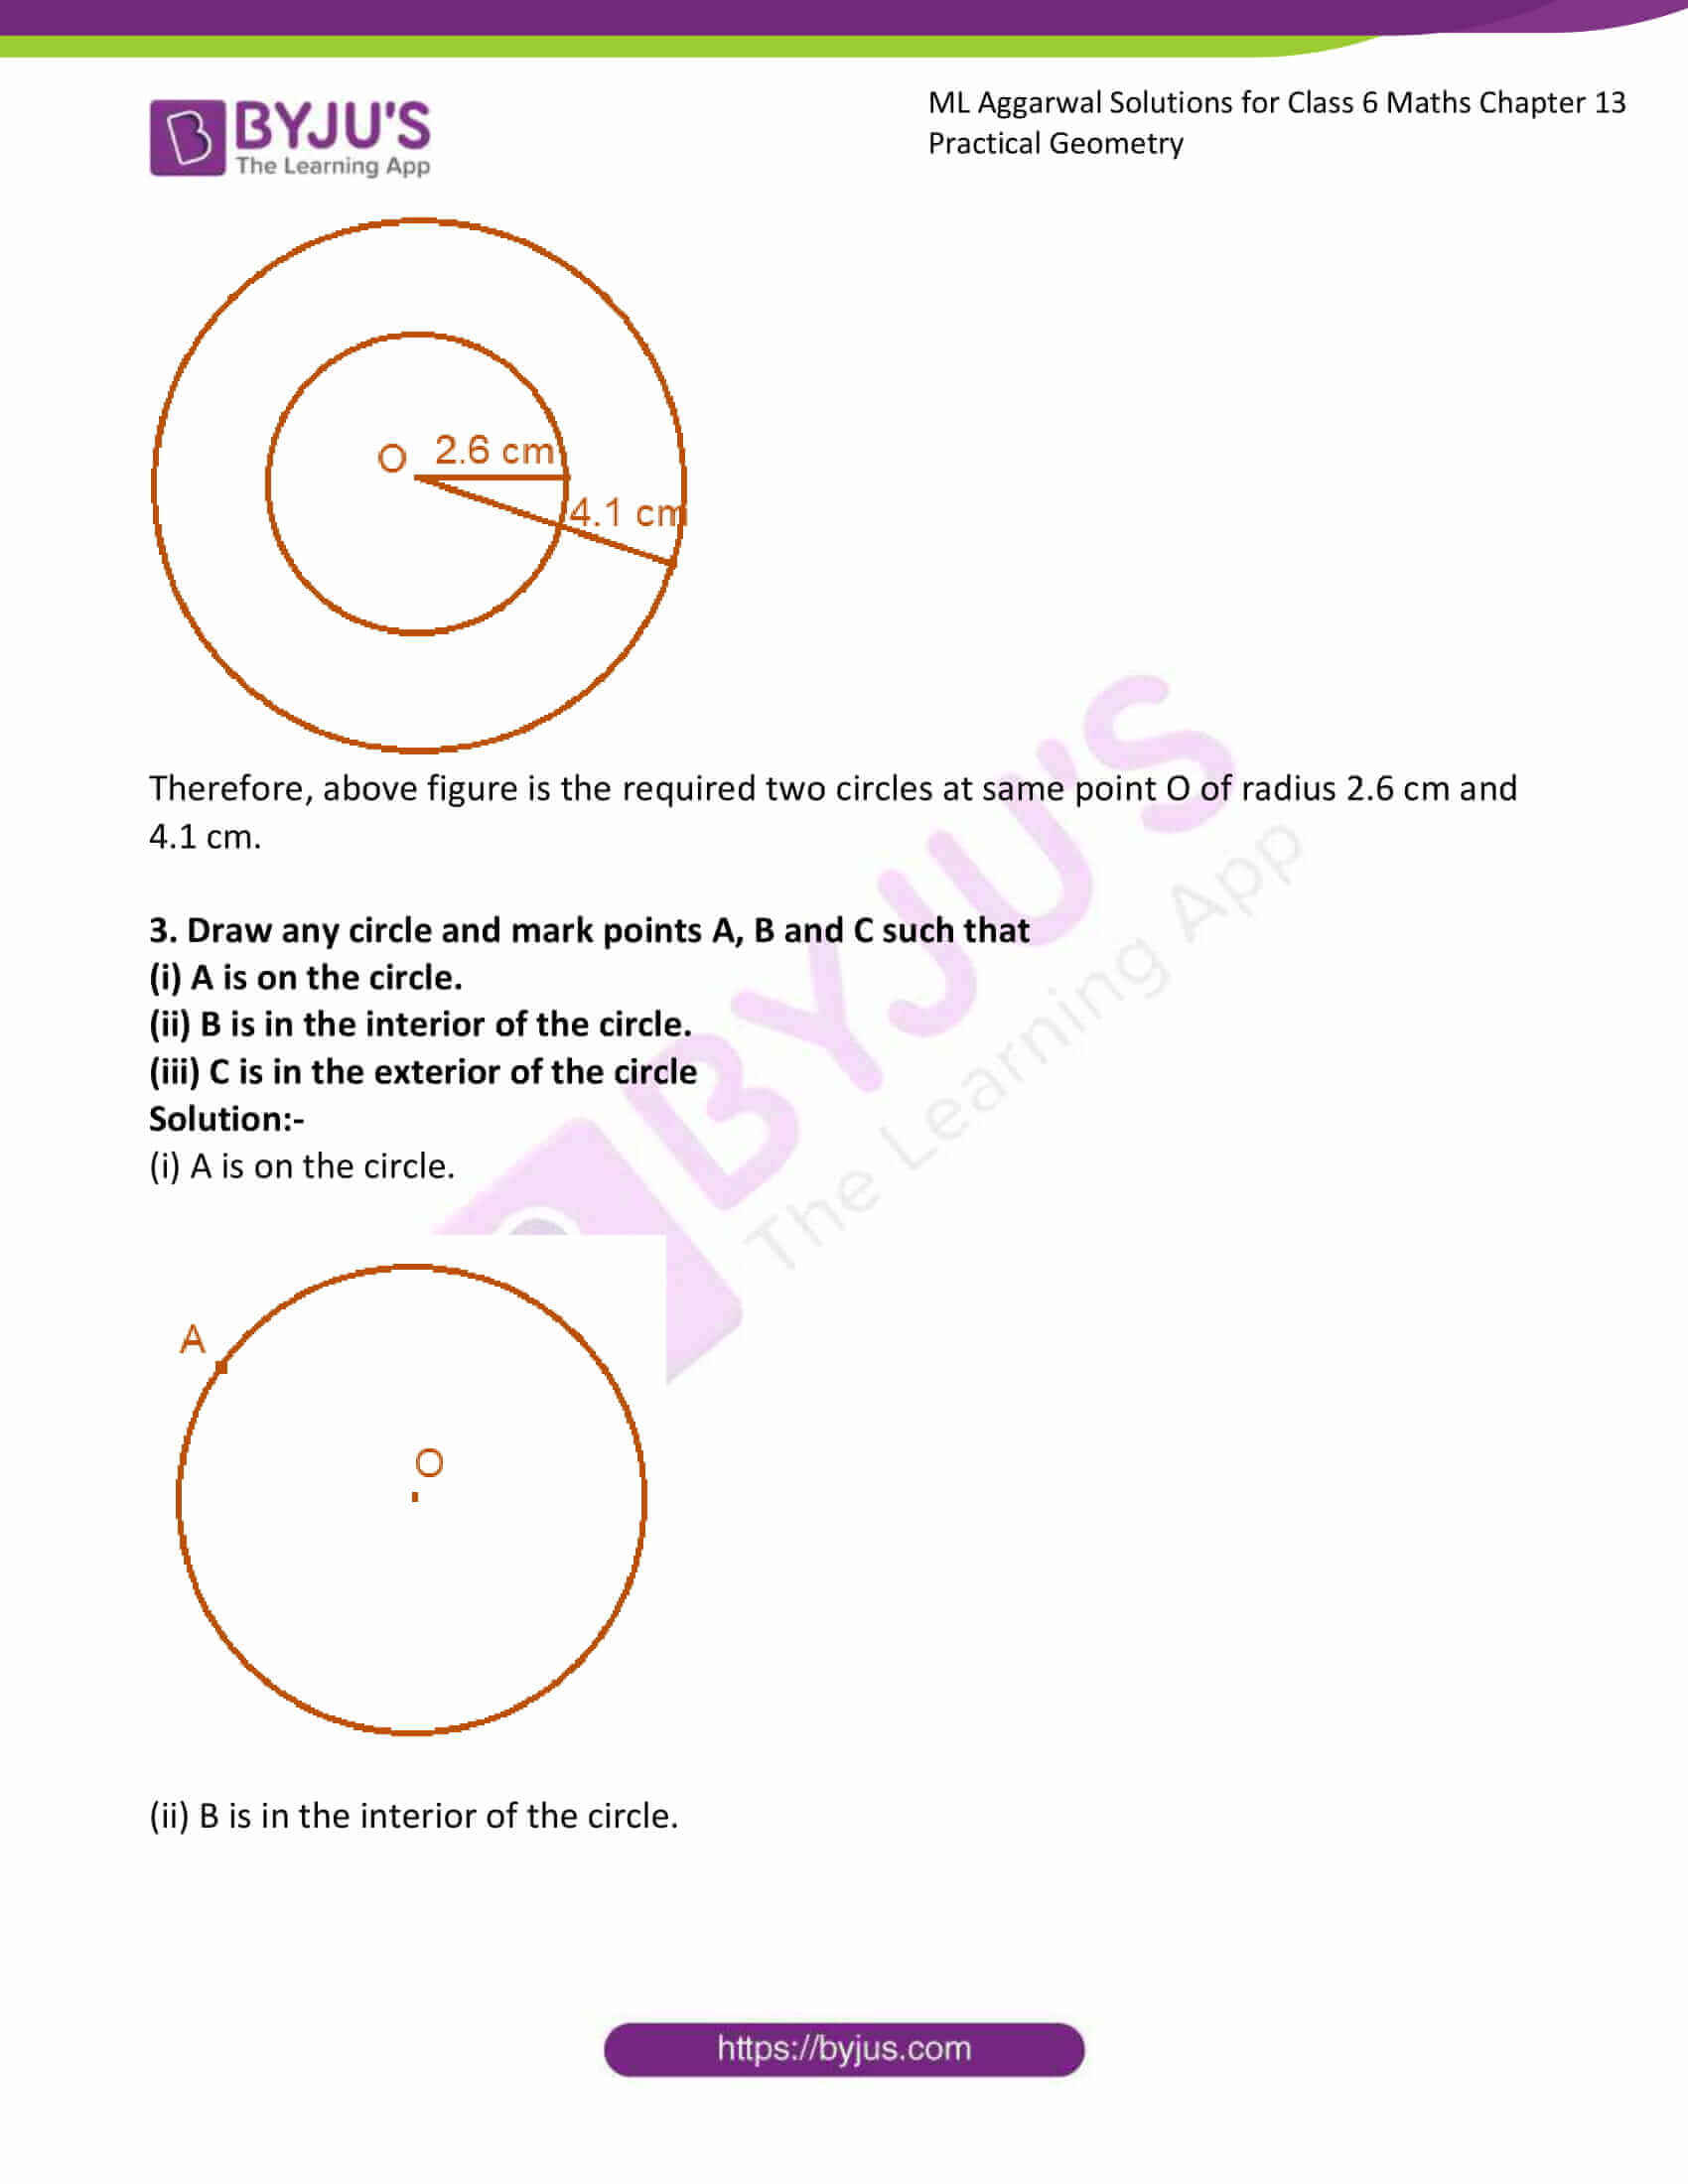 ml aggarwal solutions for class 6 maths chapter 13 3